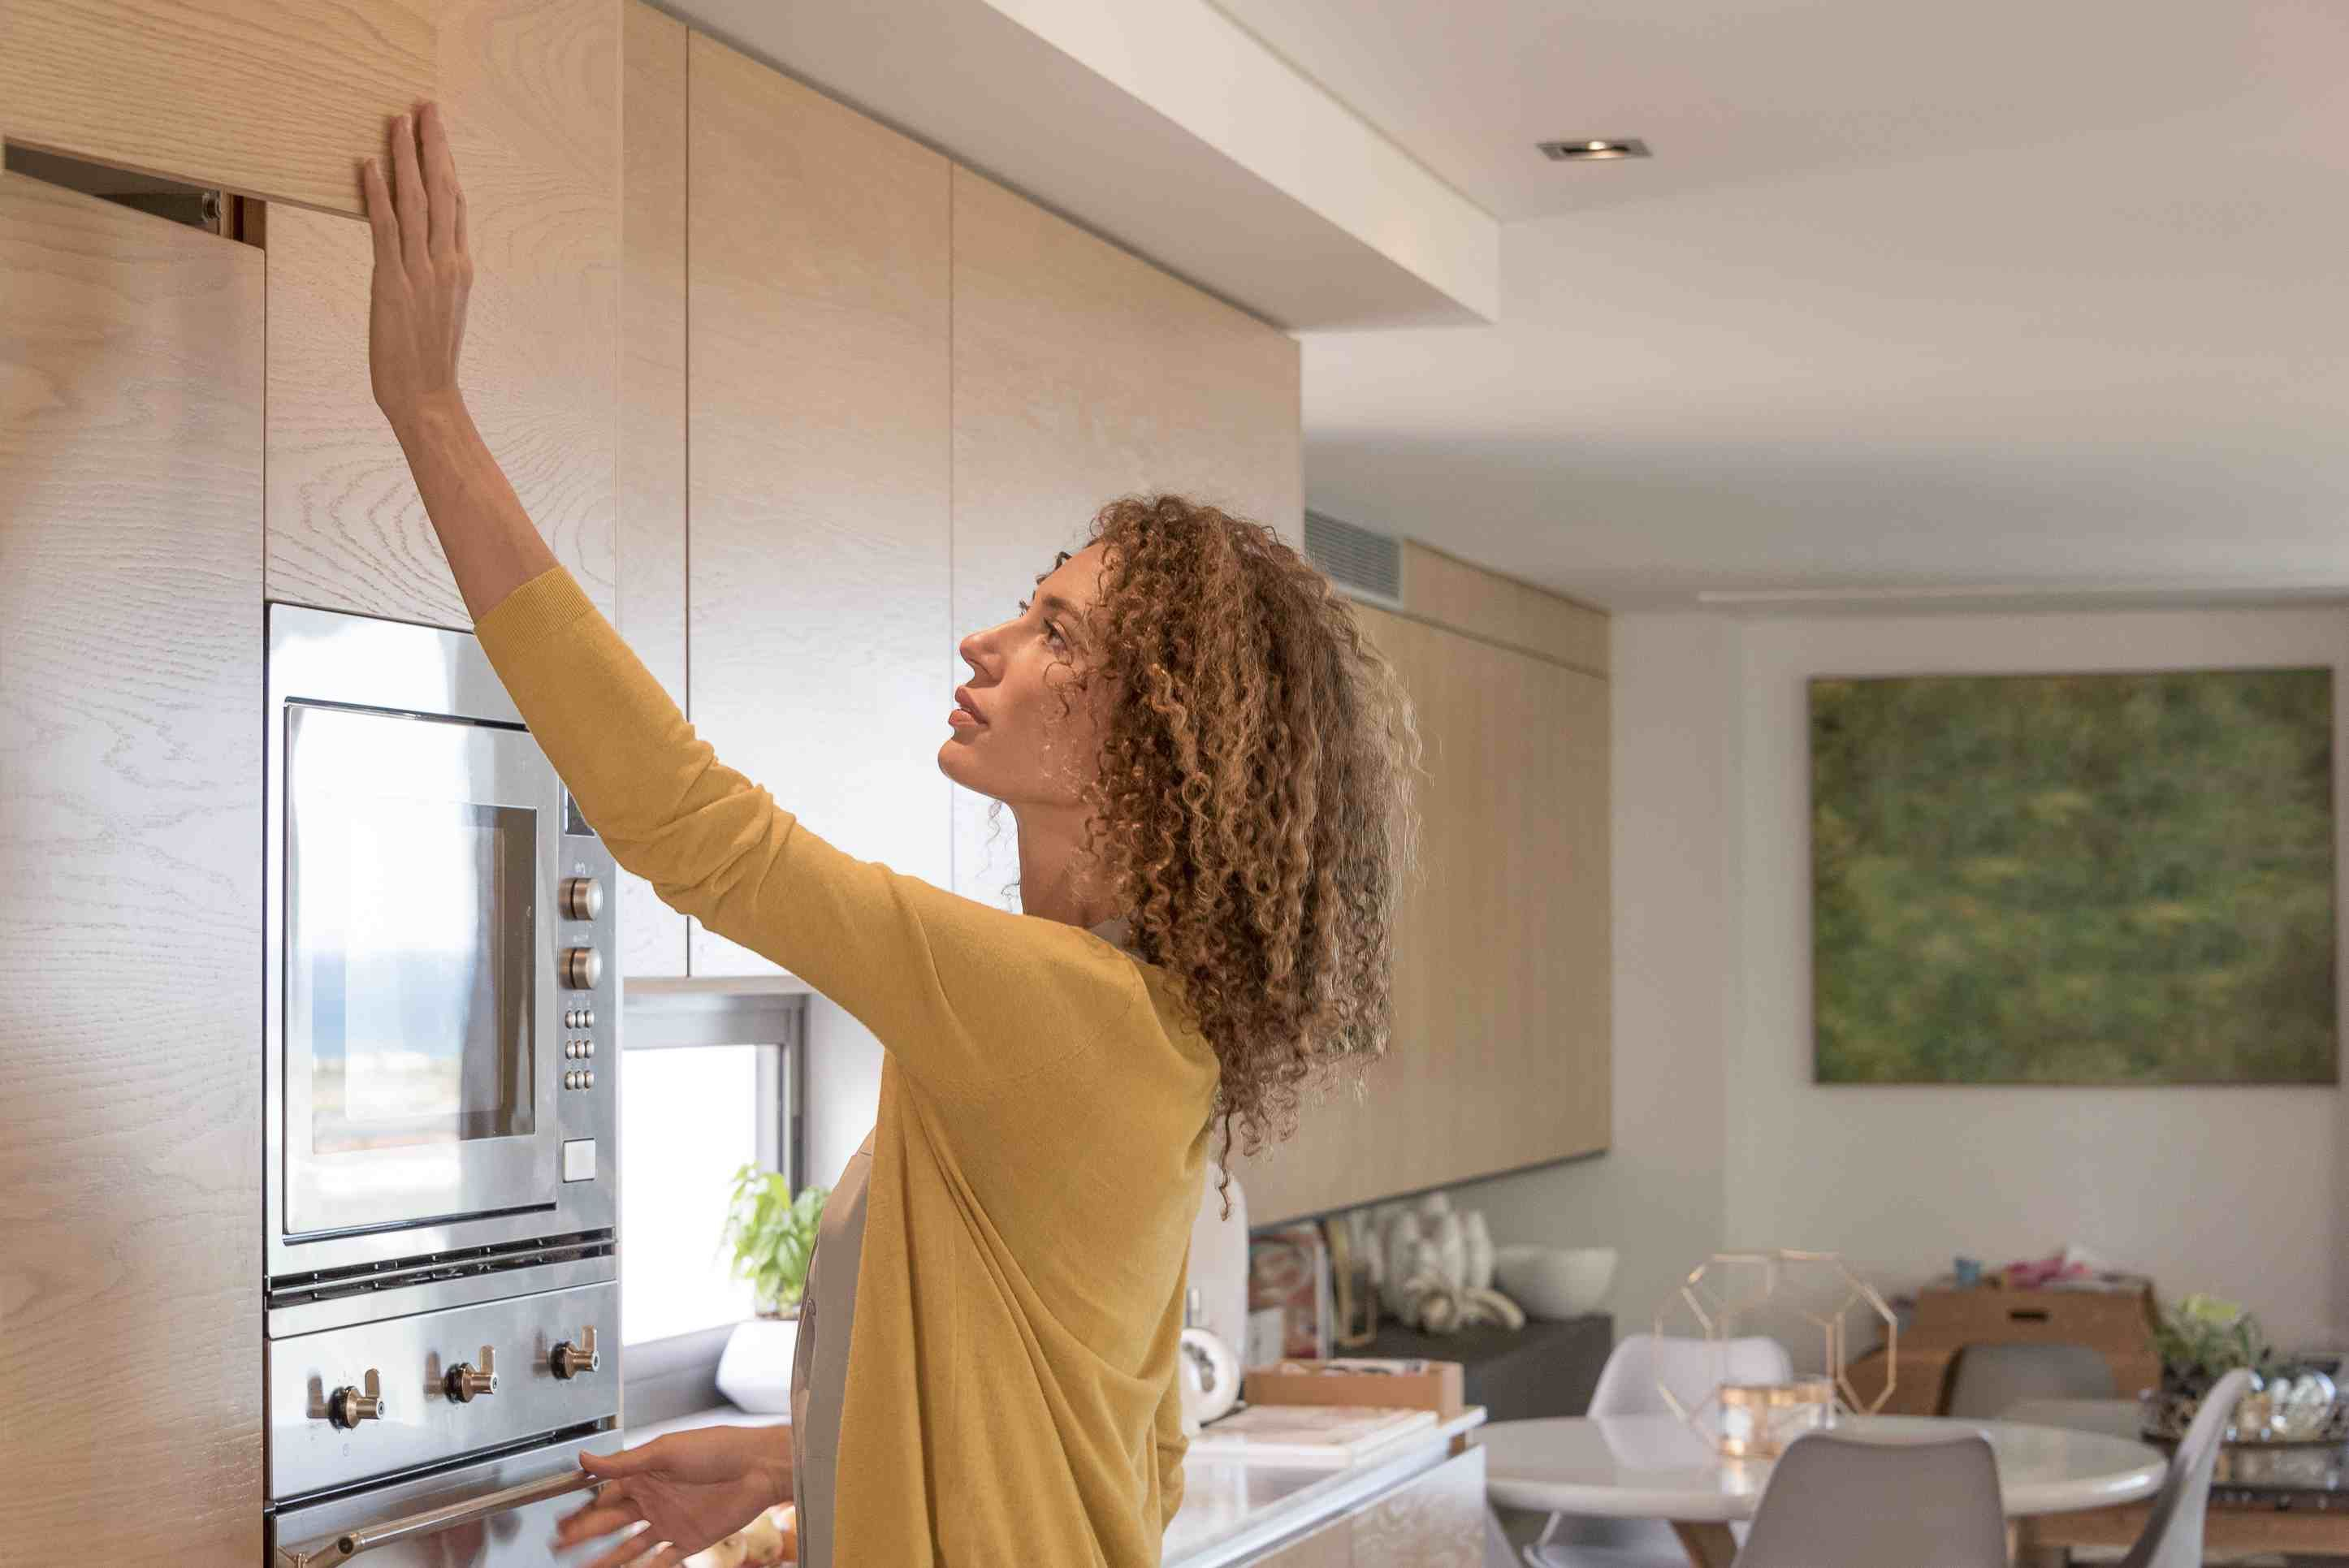 How To Know If Your Kitchen Cabinets Should Go To The Ceiling Kitchen Cabinets Trim Upper Kitchen Cabinets Kitchen Cabinets